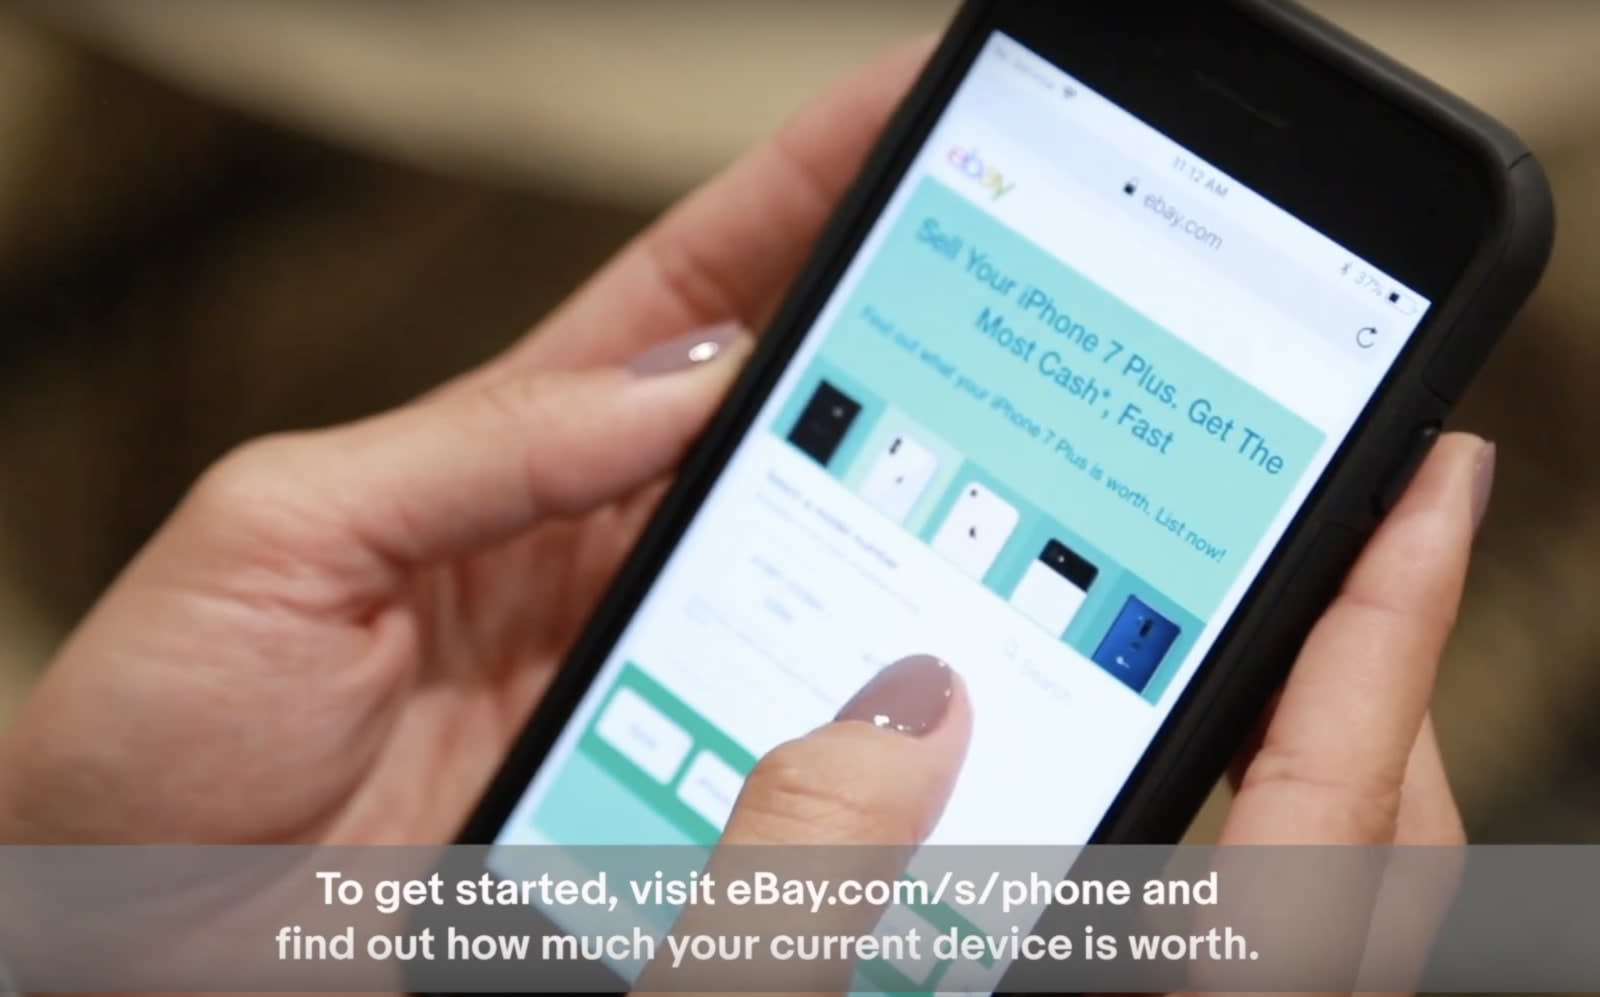 eBay's Instant Selling is a hassle-free way to sell your old